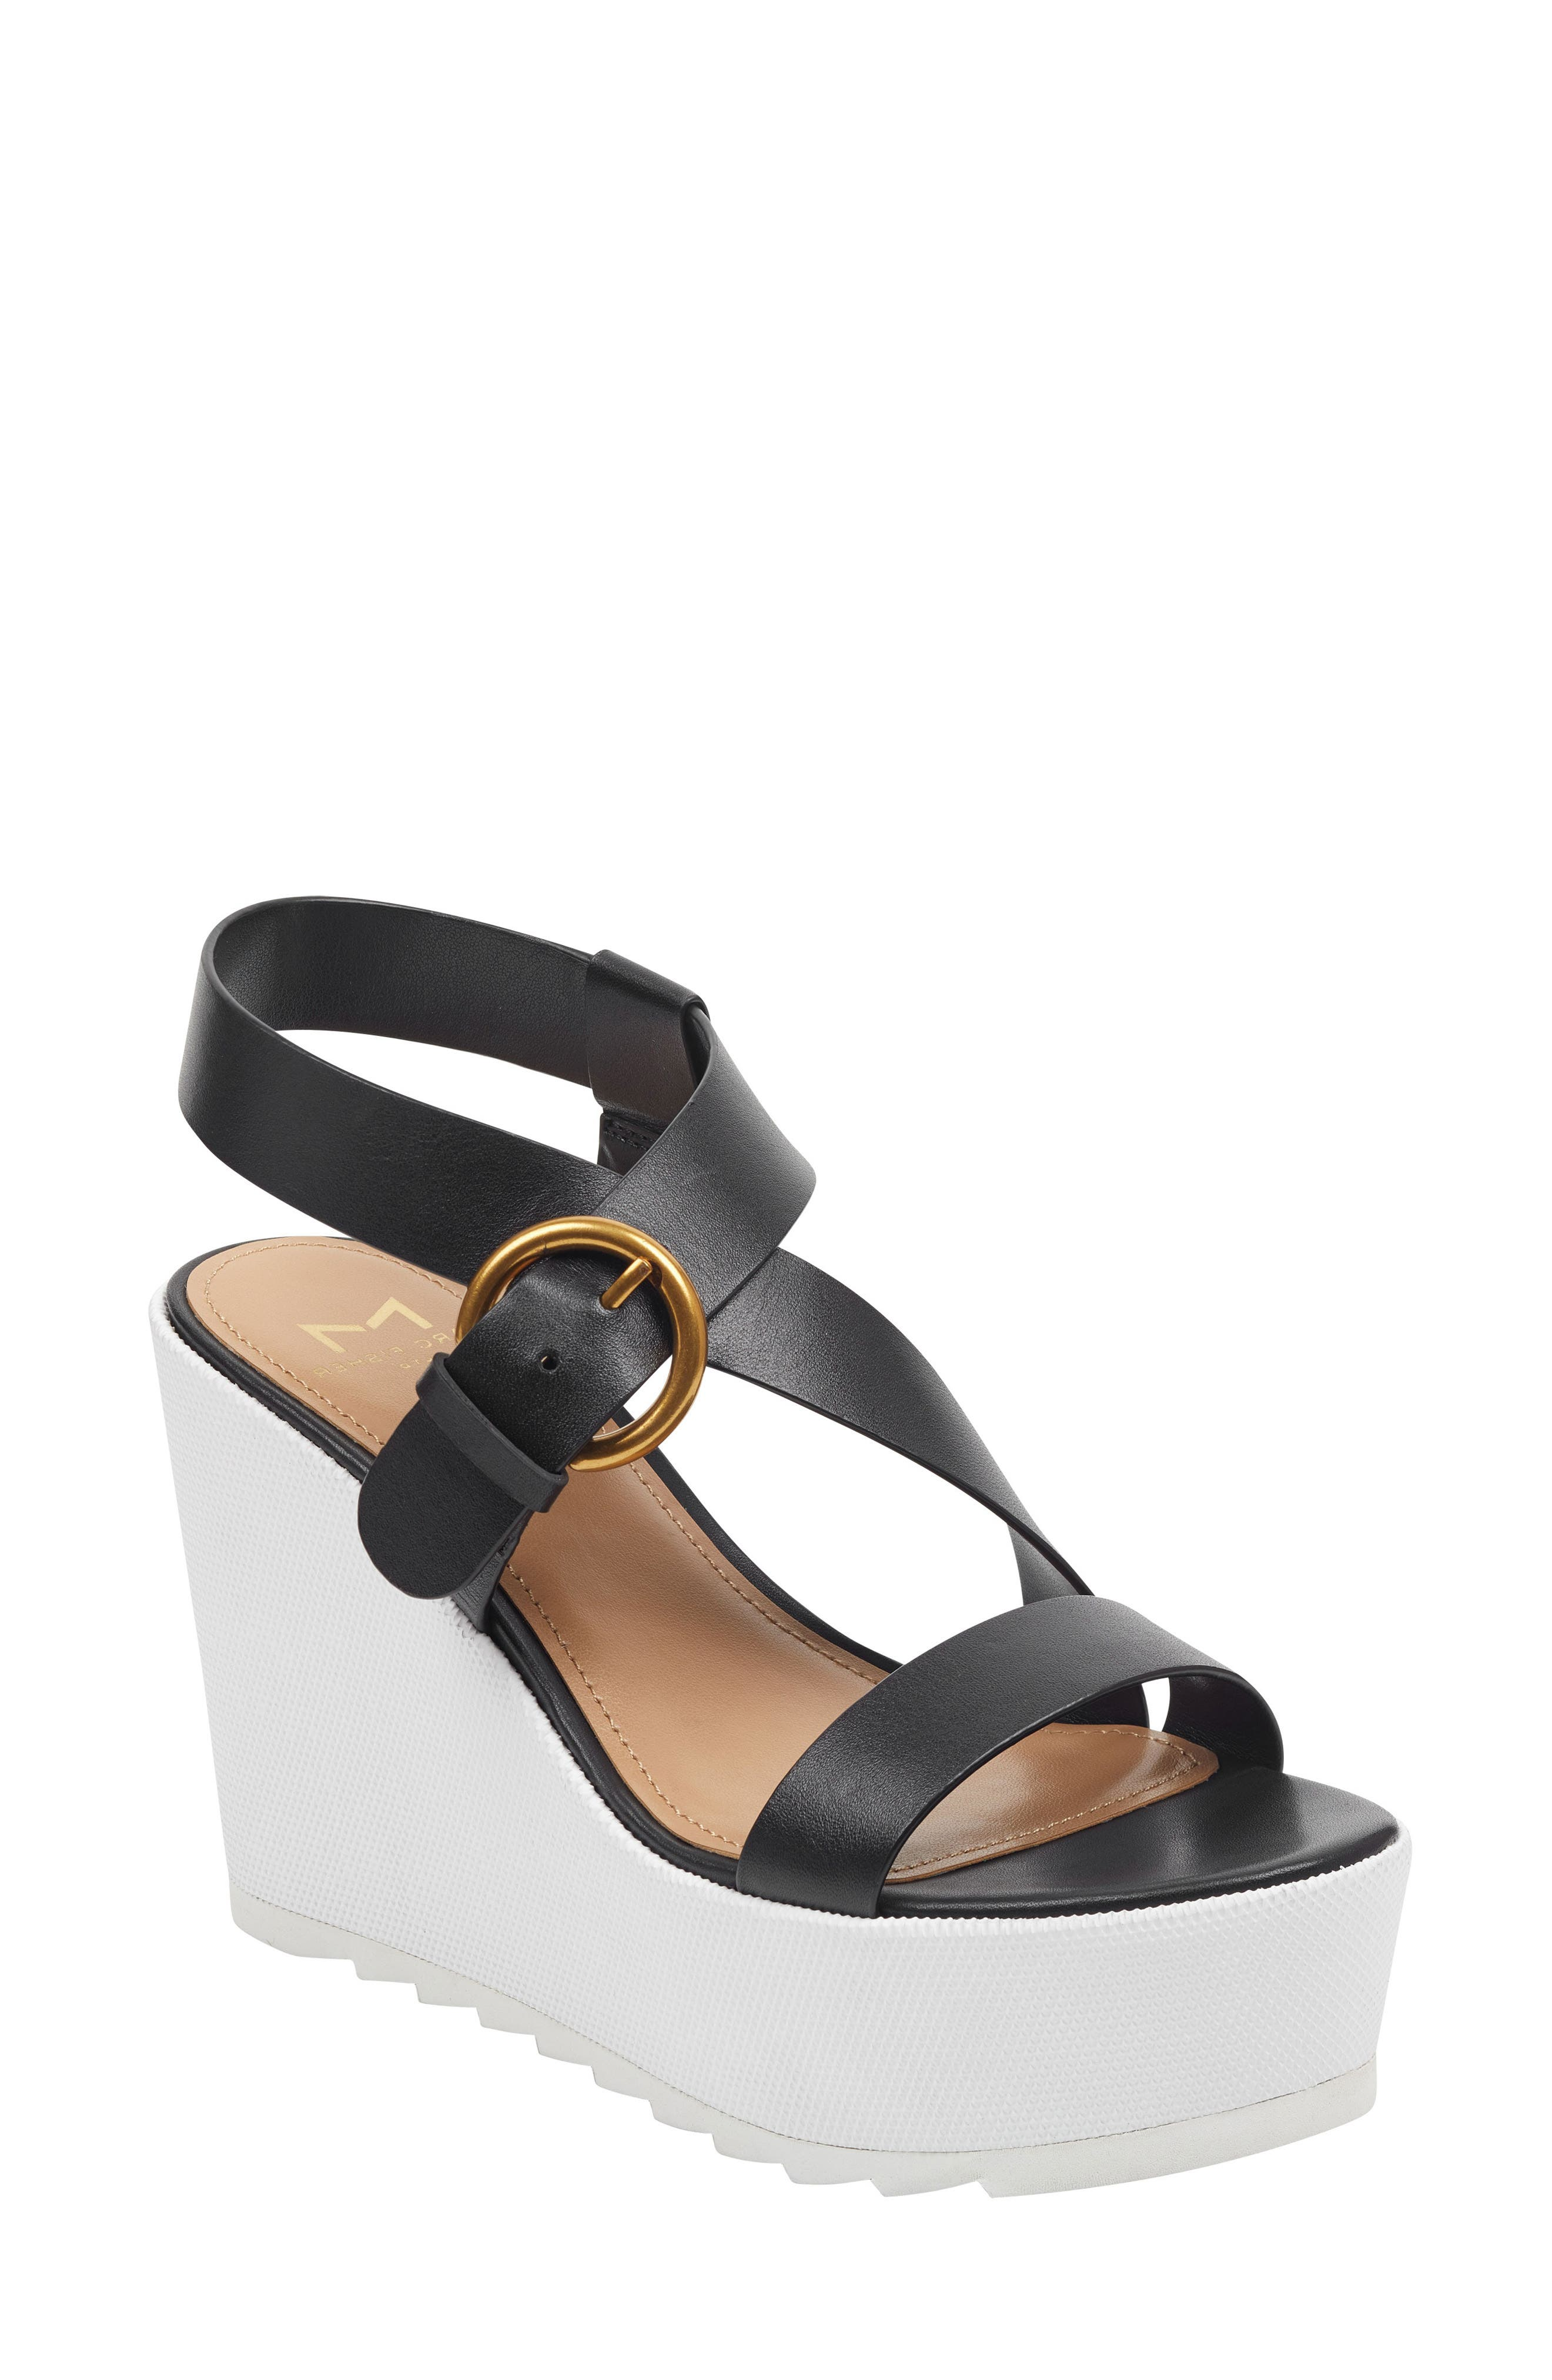 Marc Fisher Ltd Mahina Platform Wedge Sandal, Black